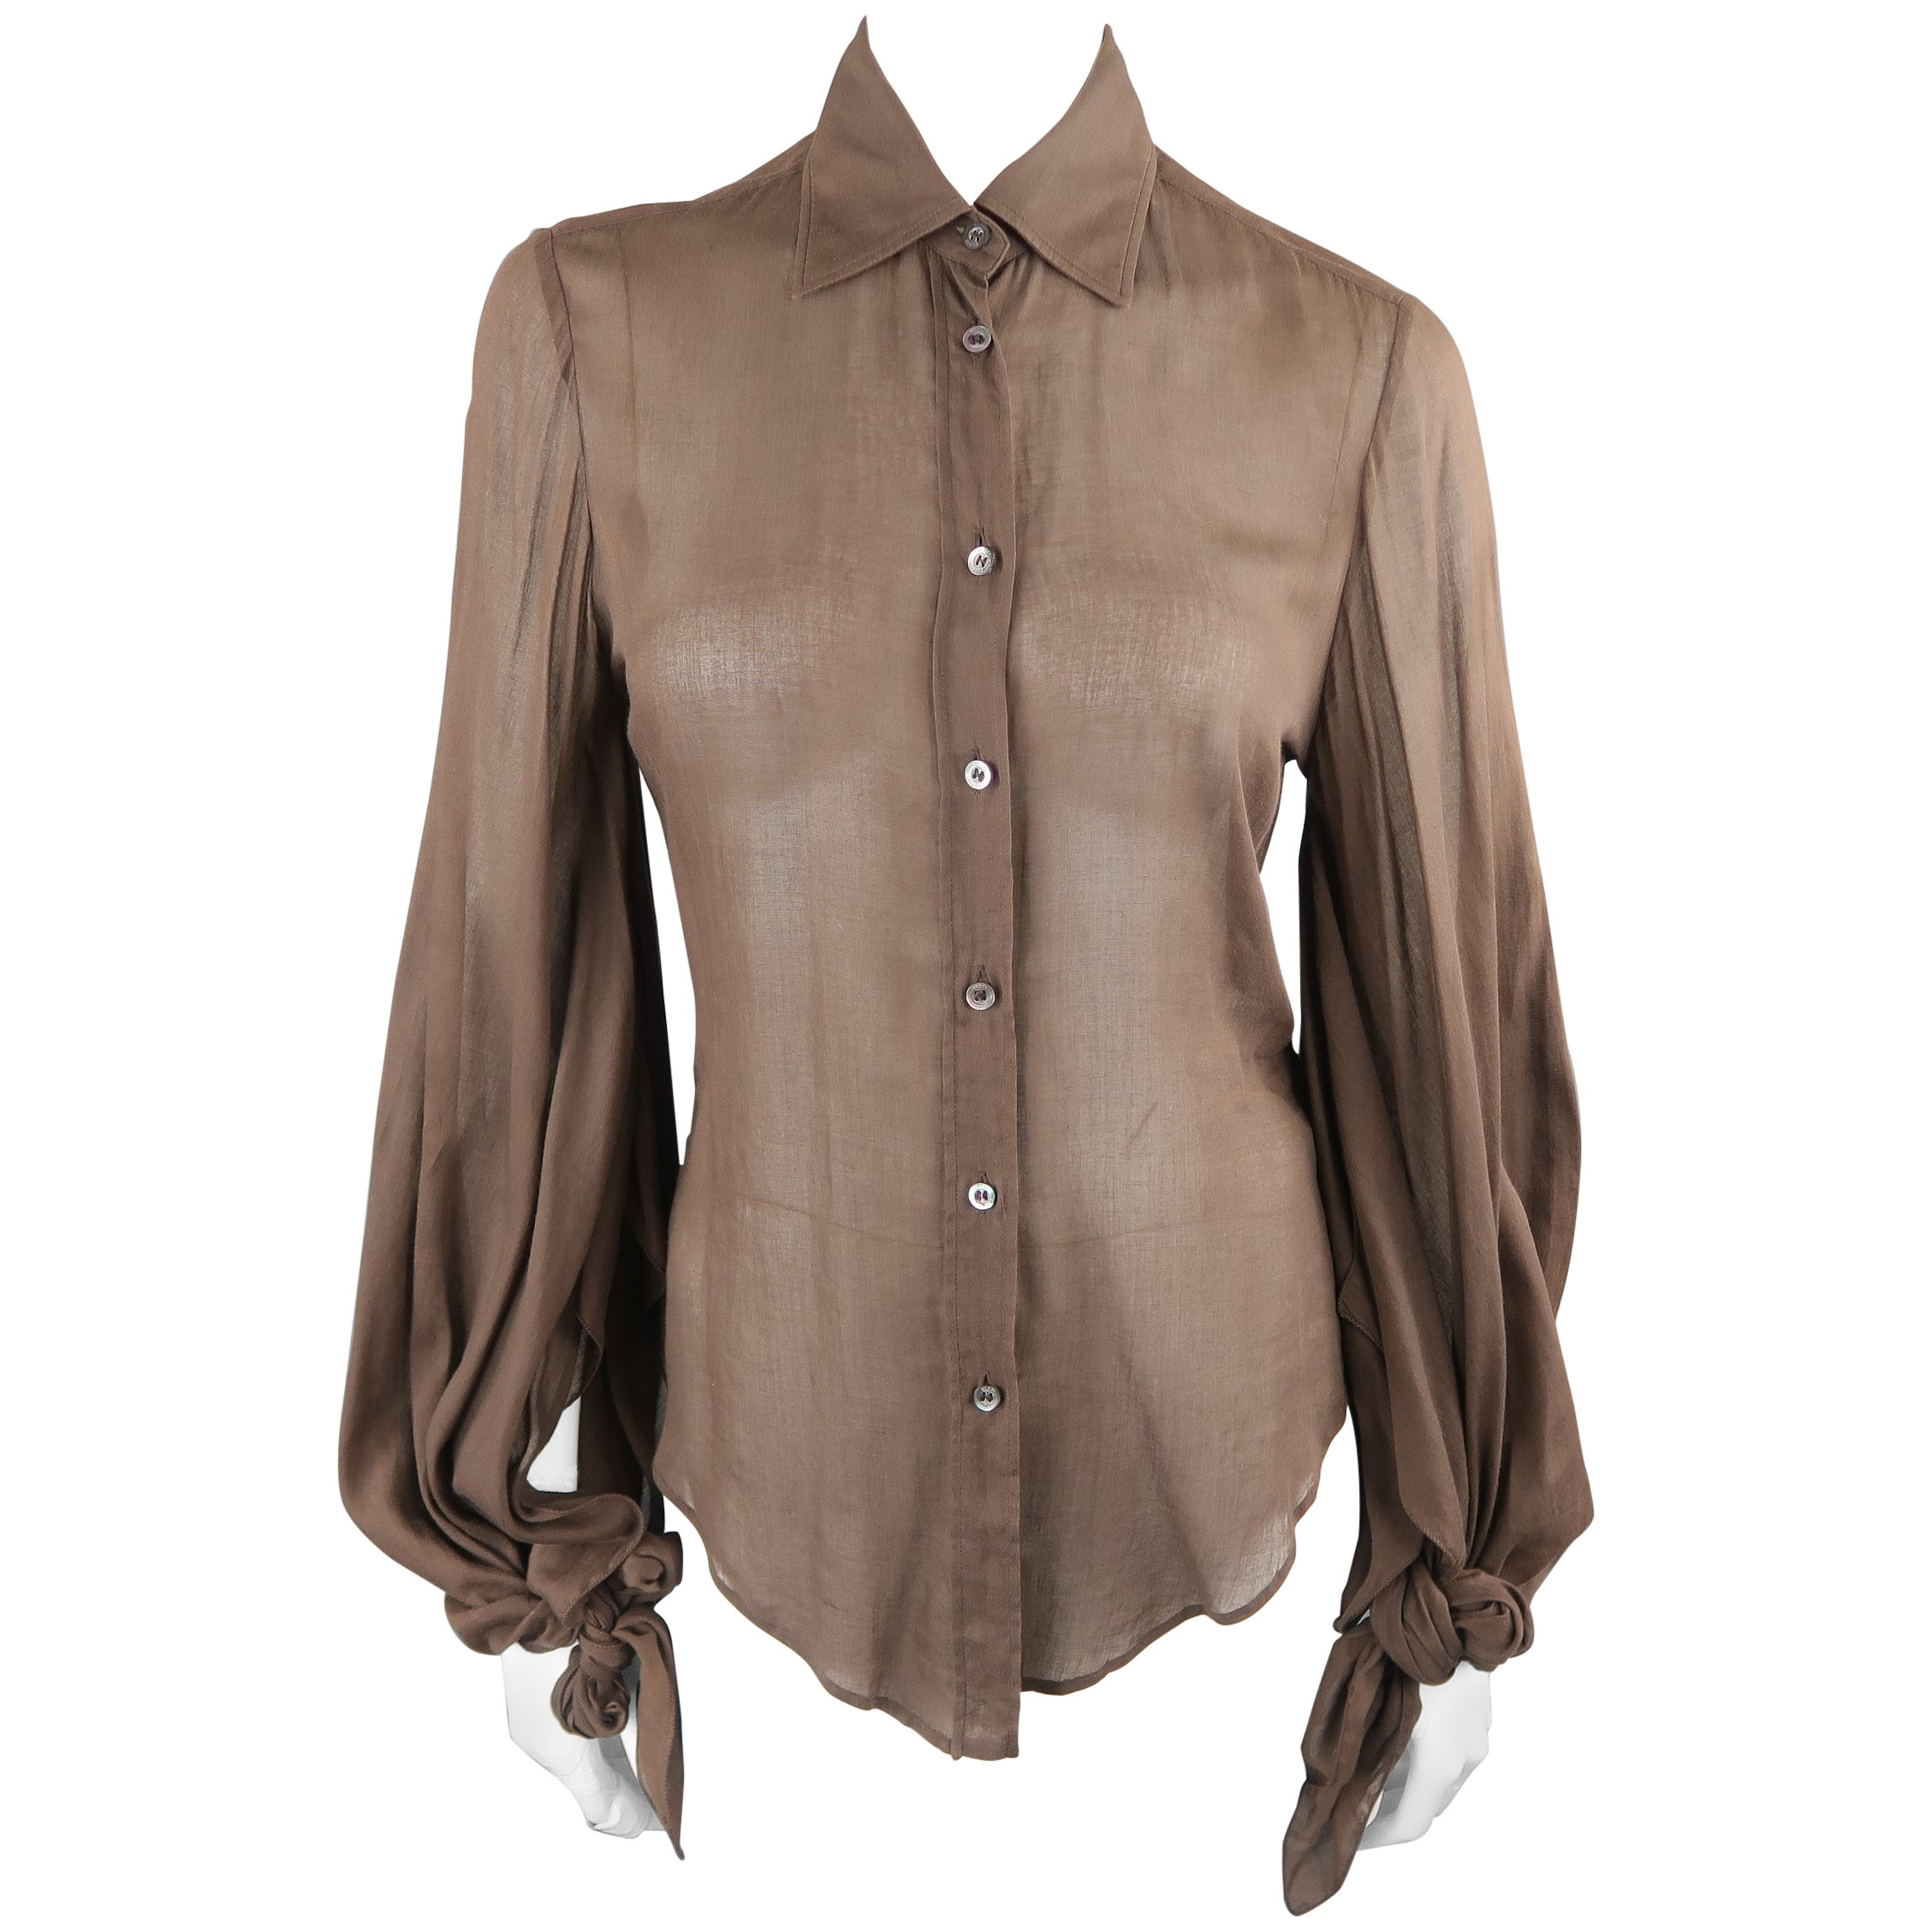 c095fcad5 Gucci Brown Sheer Cotton Slit Tied Sleeve Blouse at 1stdibs